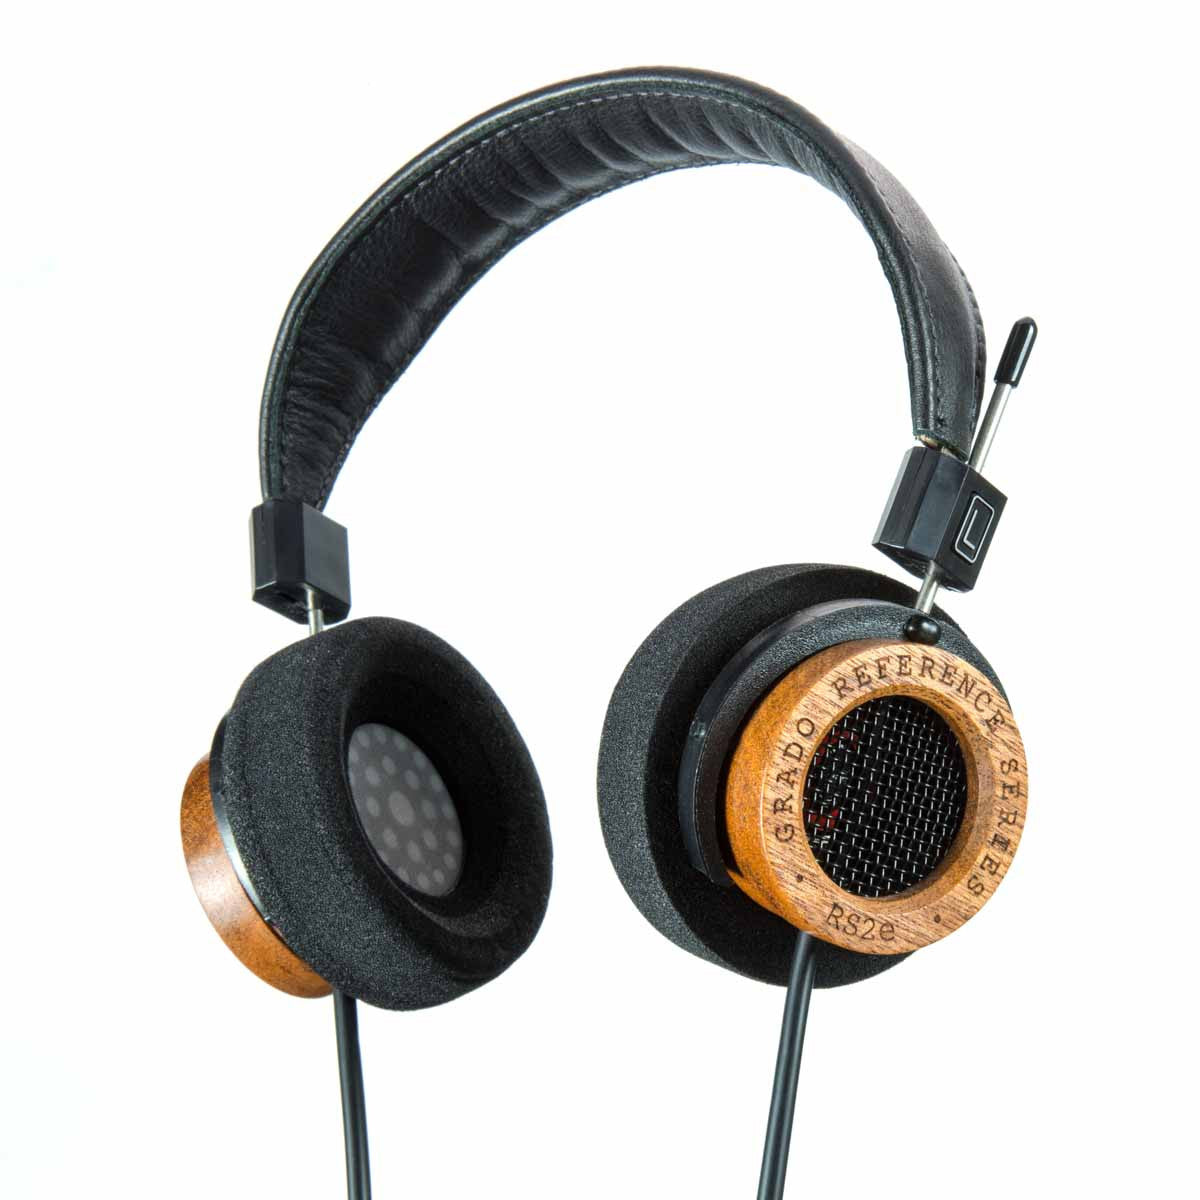 Grado RS 2e Reference Series Headphone